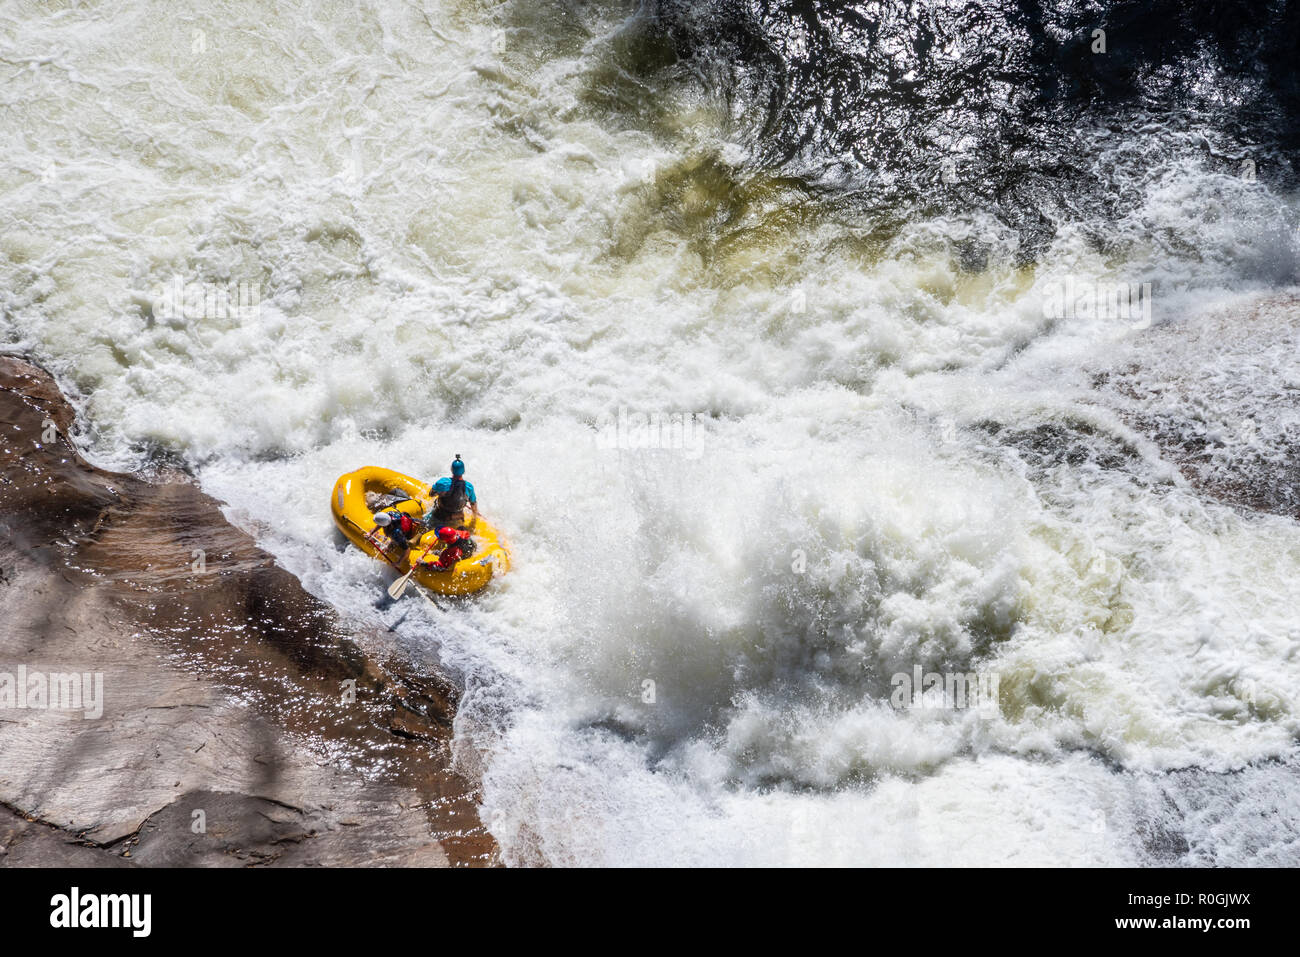 Whitewater rafters in Tallulah Gorge during a whitewater release from the Tallulah Falls Dam in Northeast Georgia. (USA) - Stock Image